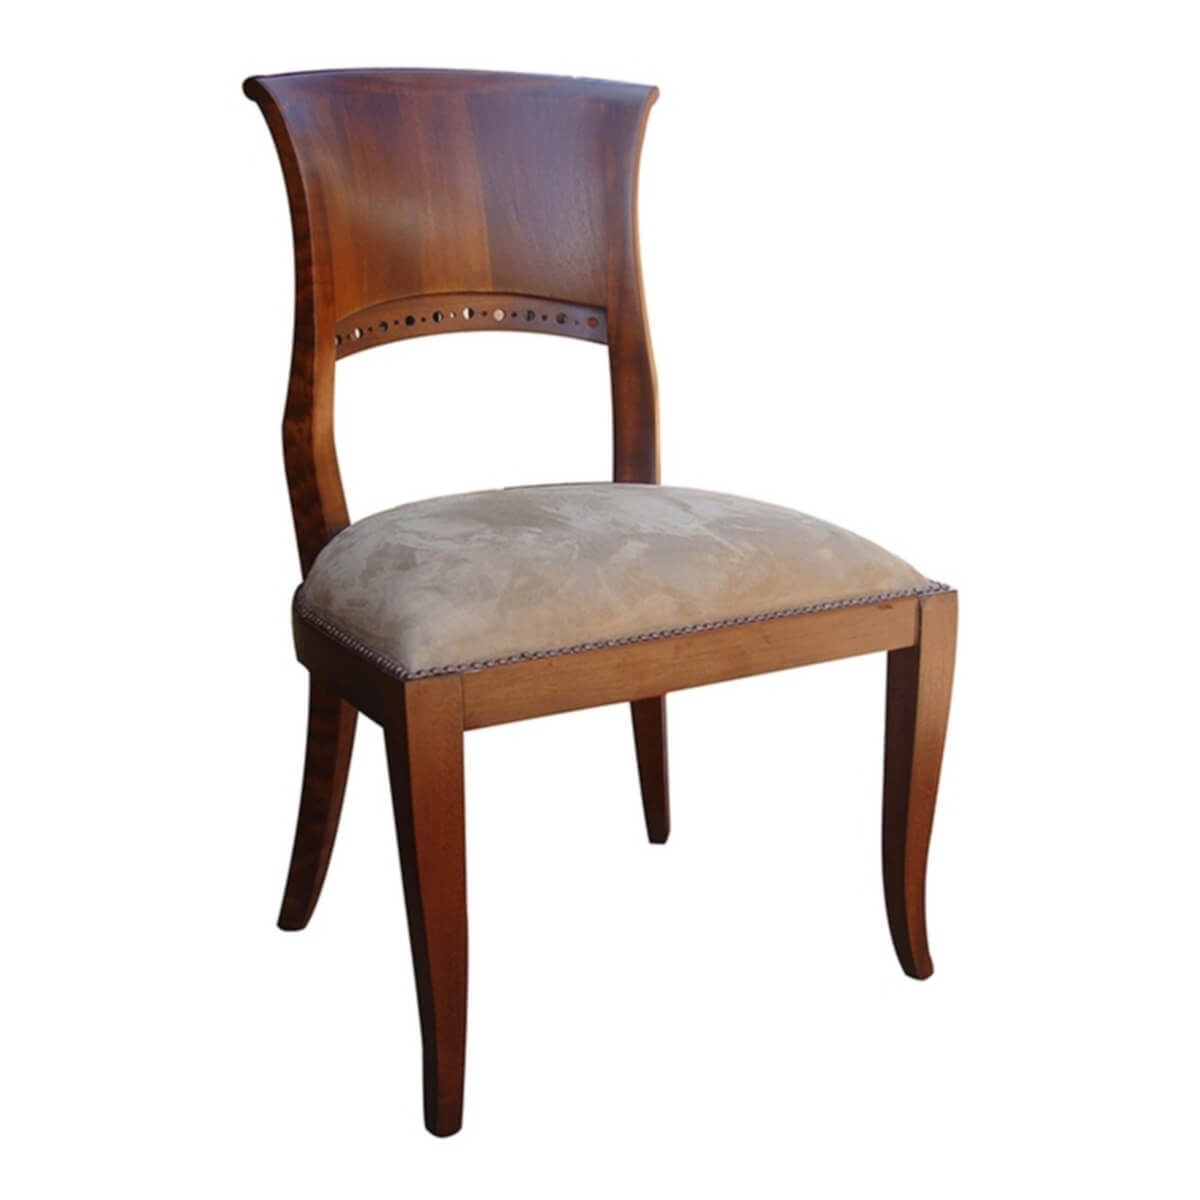 damek-dining-chair-product-image